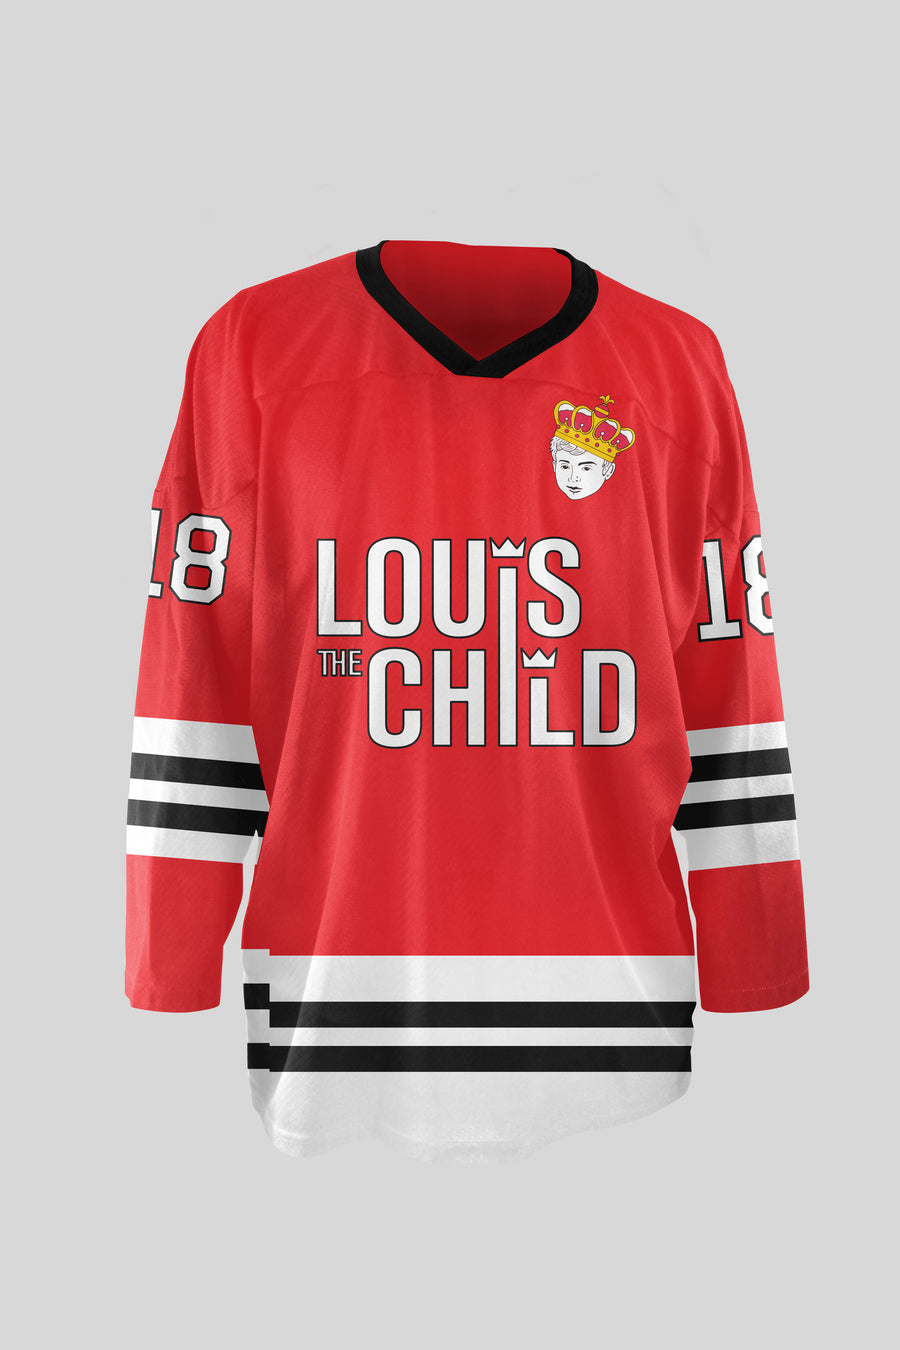 LTC Retro Hockey Jersey - Red